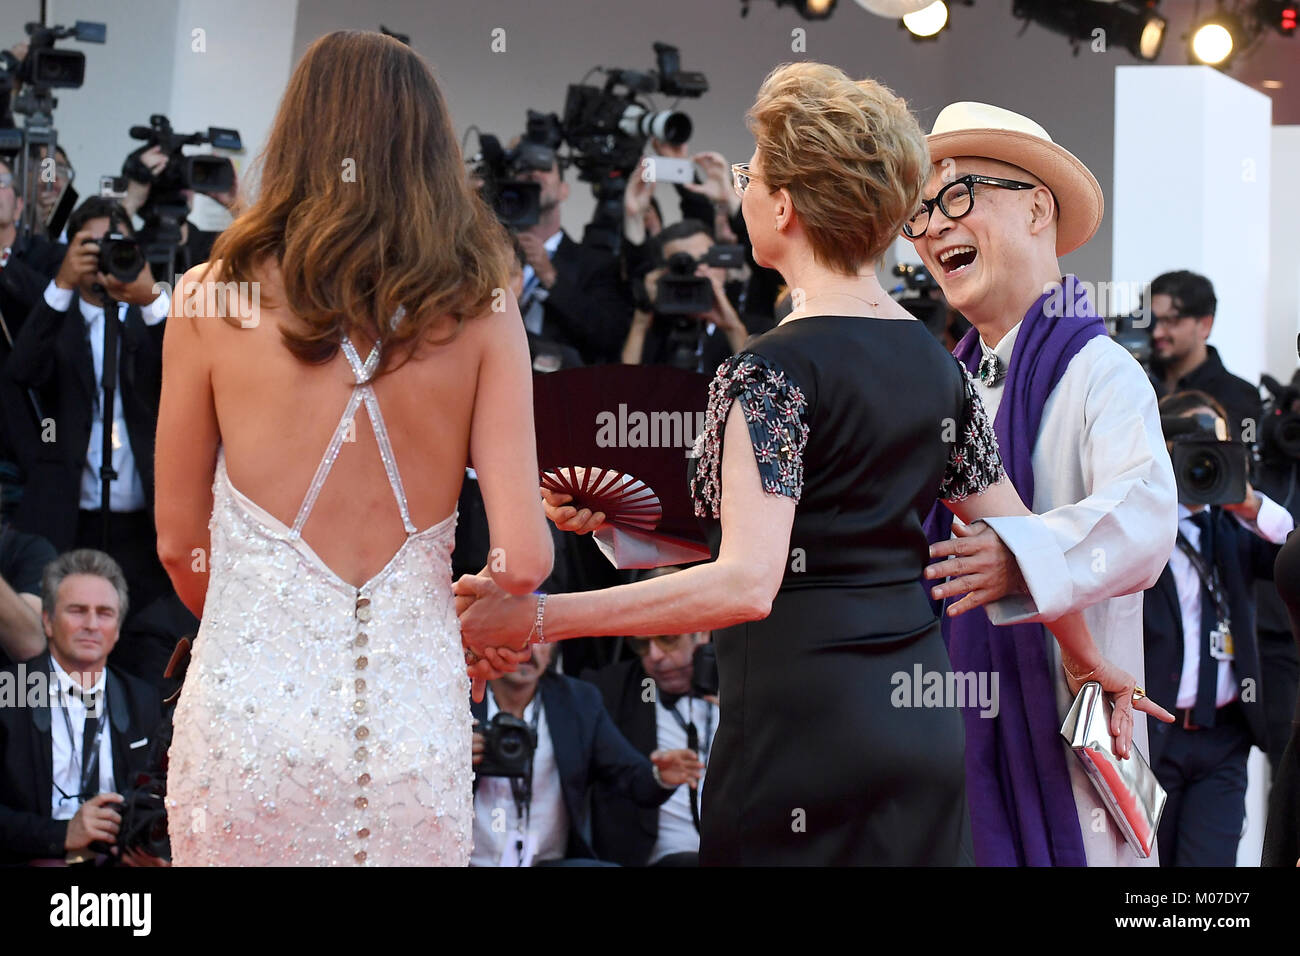 Anna Mouglalis, Annette Bening and Yonfan attend the Opening ceremony and Downsizing Premiere, 74th Venice Film - Stock Image